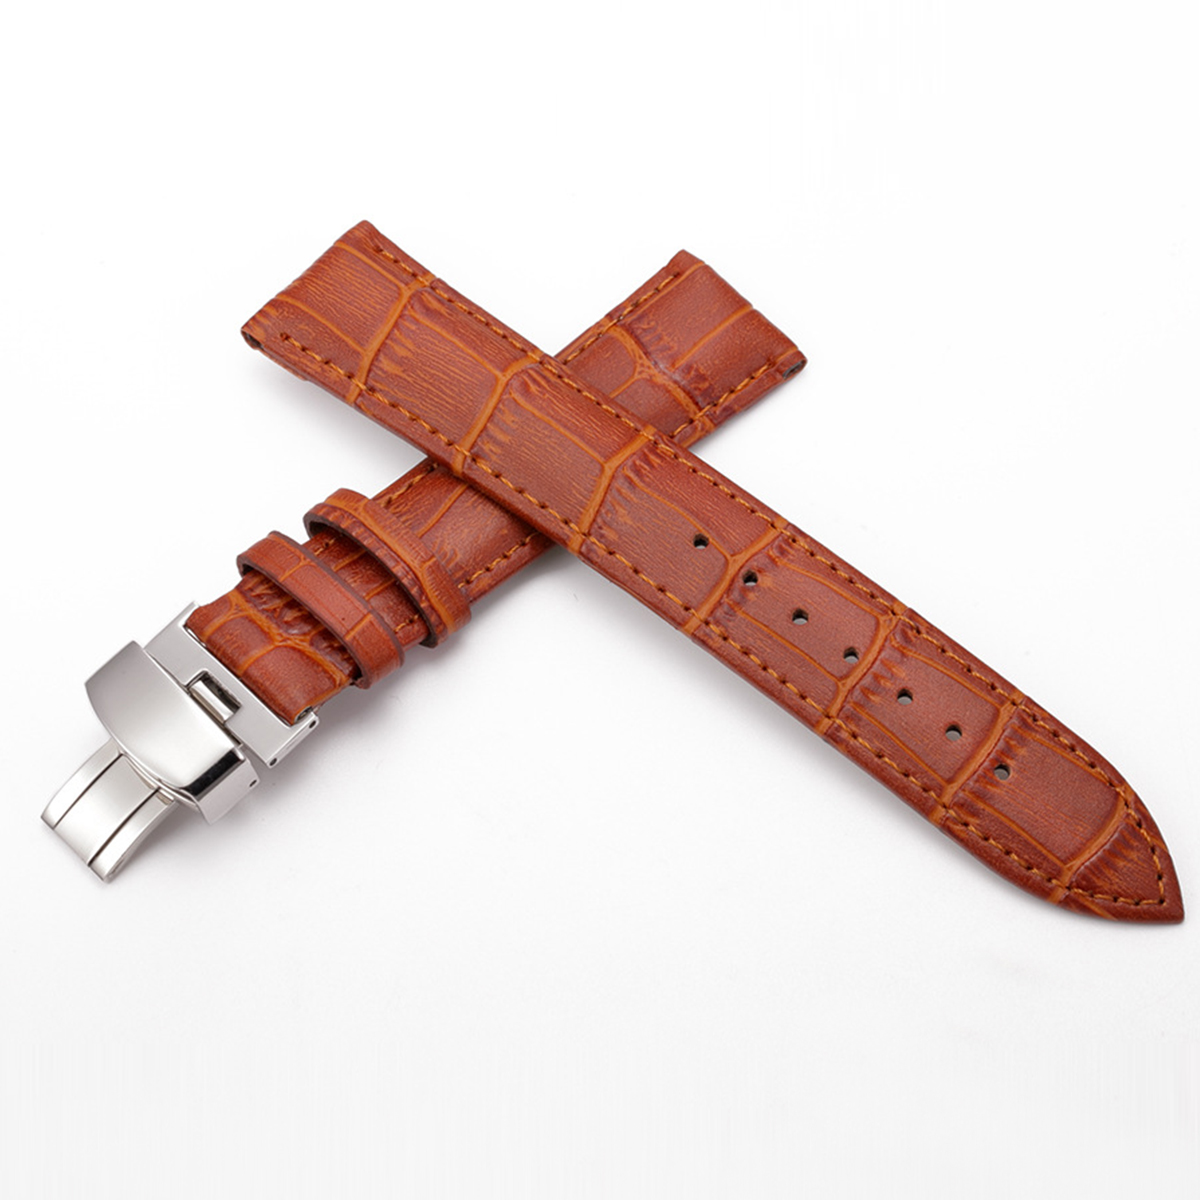 Watchband Men Women Watch Band 18-24mm Leather Watch Band Butterfly Clasp Buckle Replacement Watch Strap